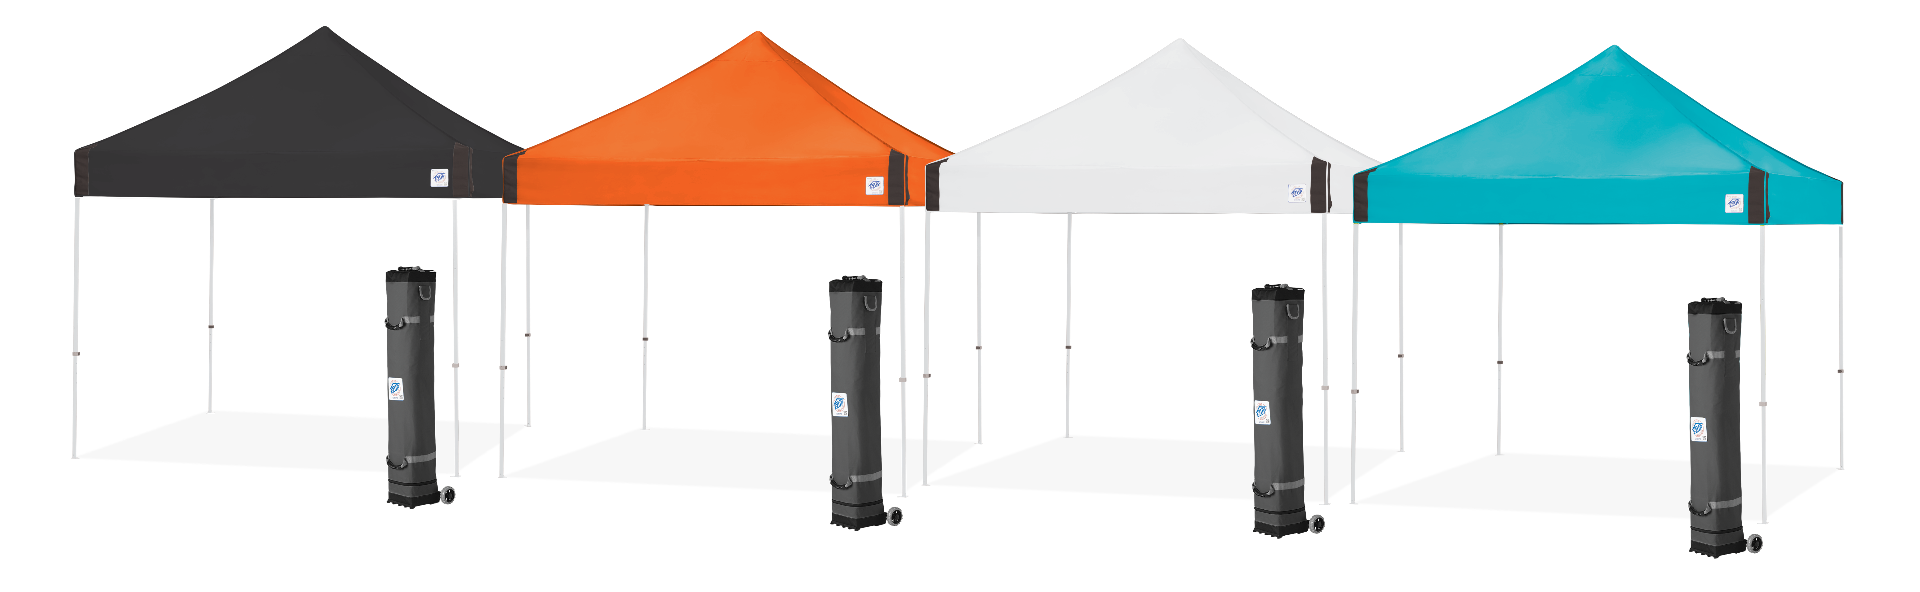 E-Z UP Triage Shelters